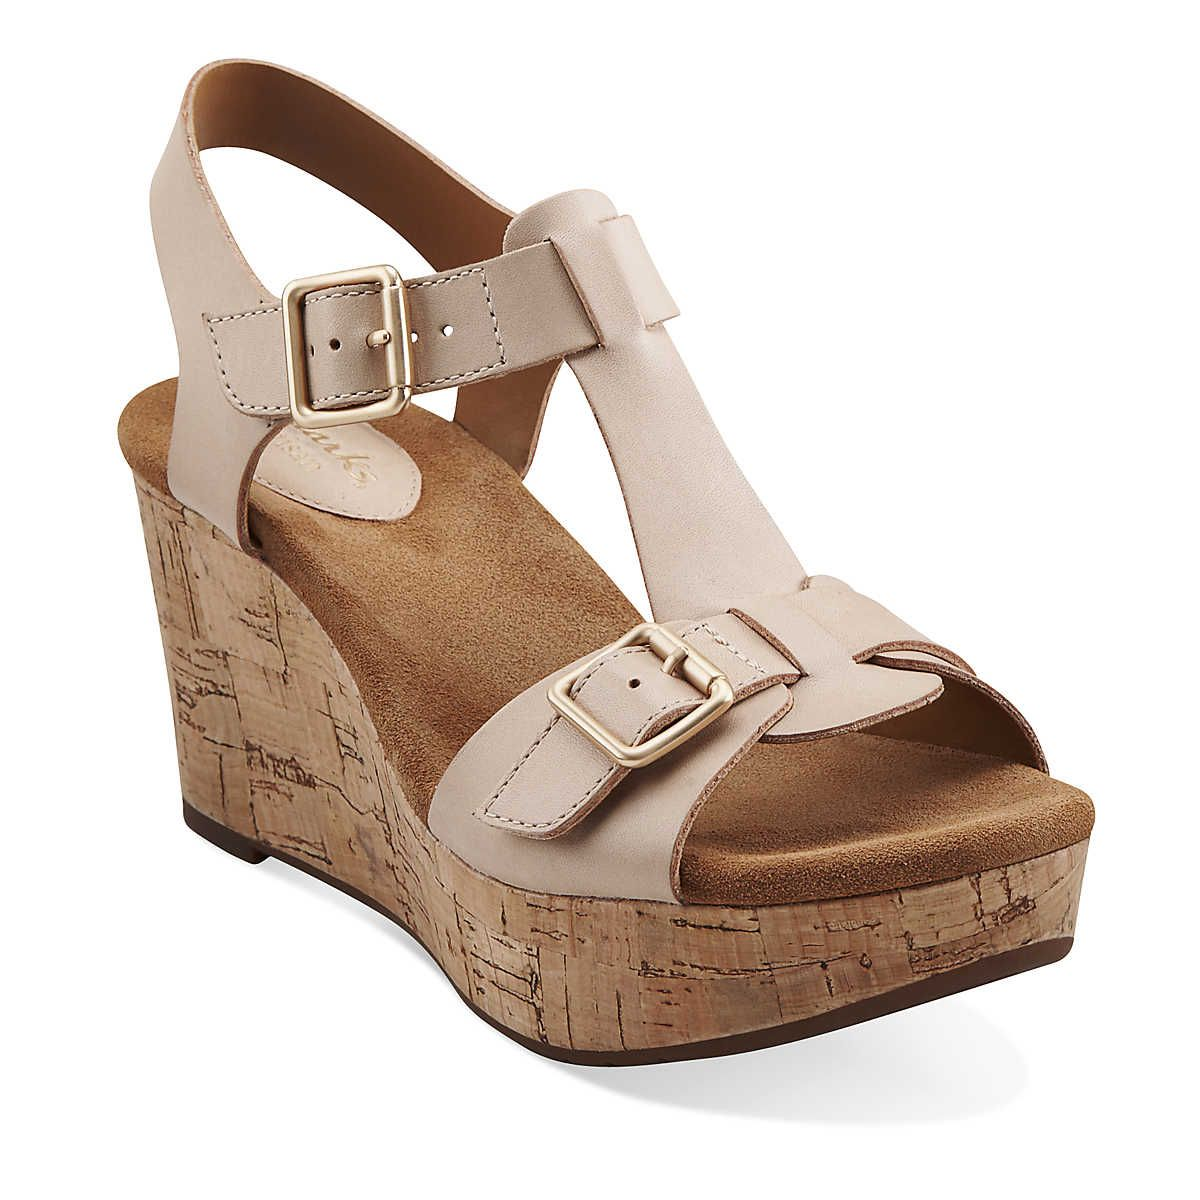 cd7827dd0754c Caslynn Paula wedge sandals in Nude Leather - Women s Sandals from Clarks...almost  bought these today